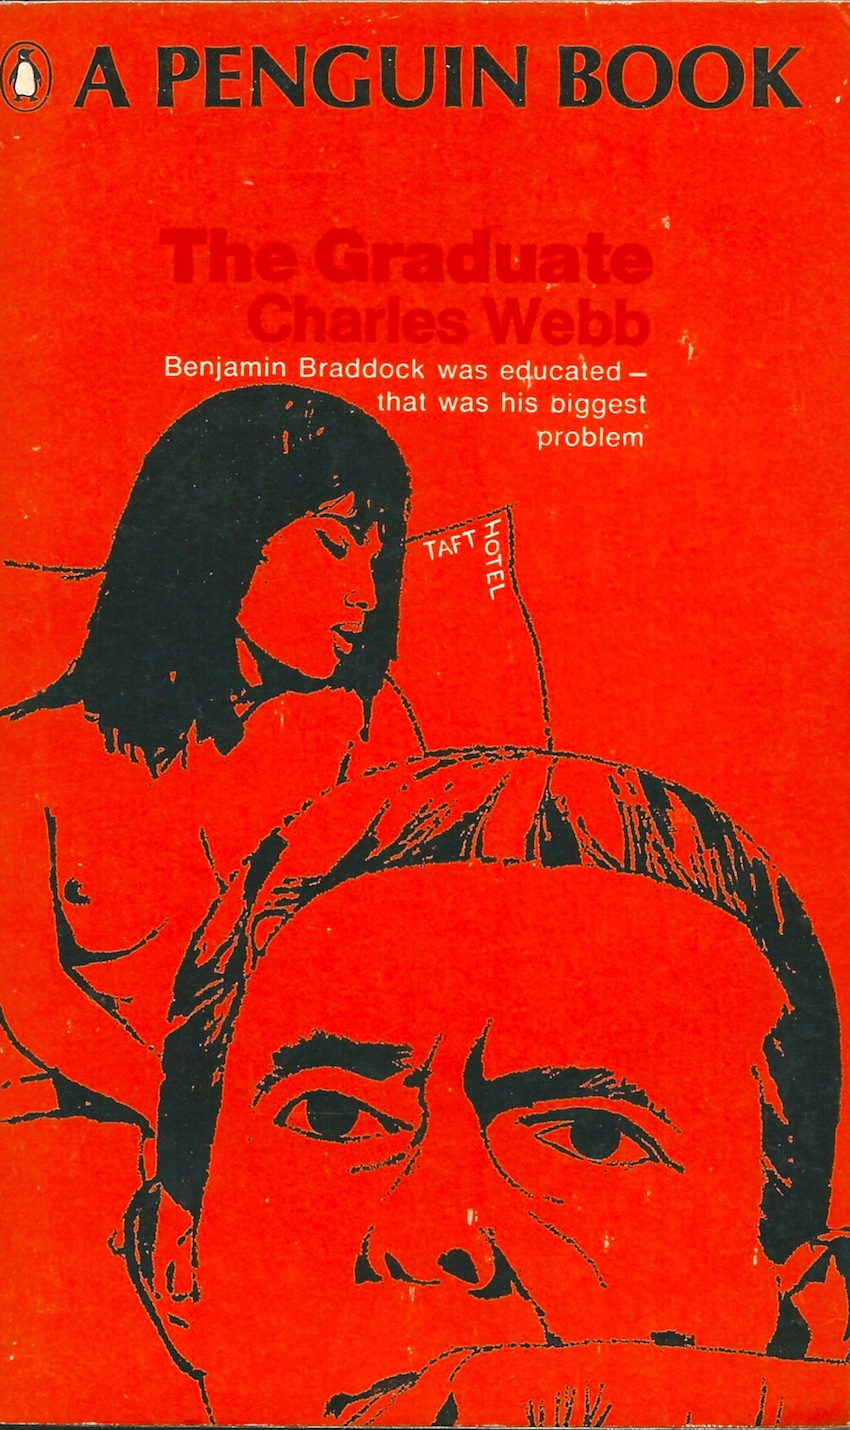 The Graduate, 1967 Penguin edition